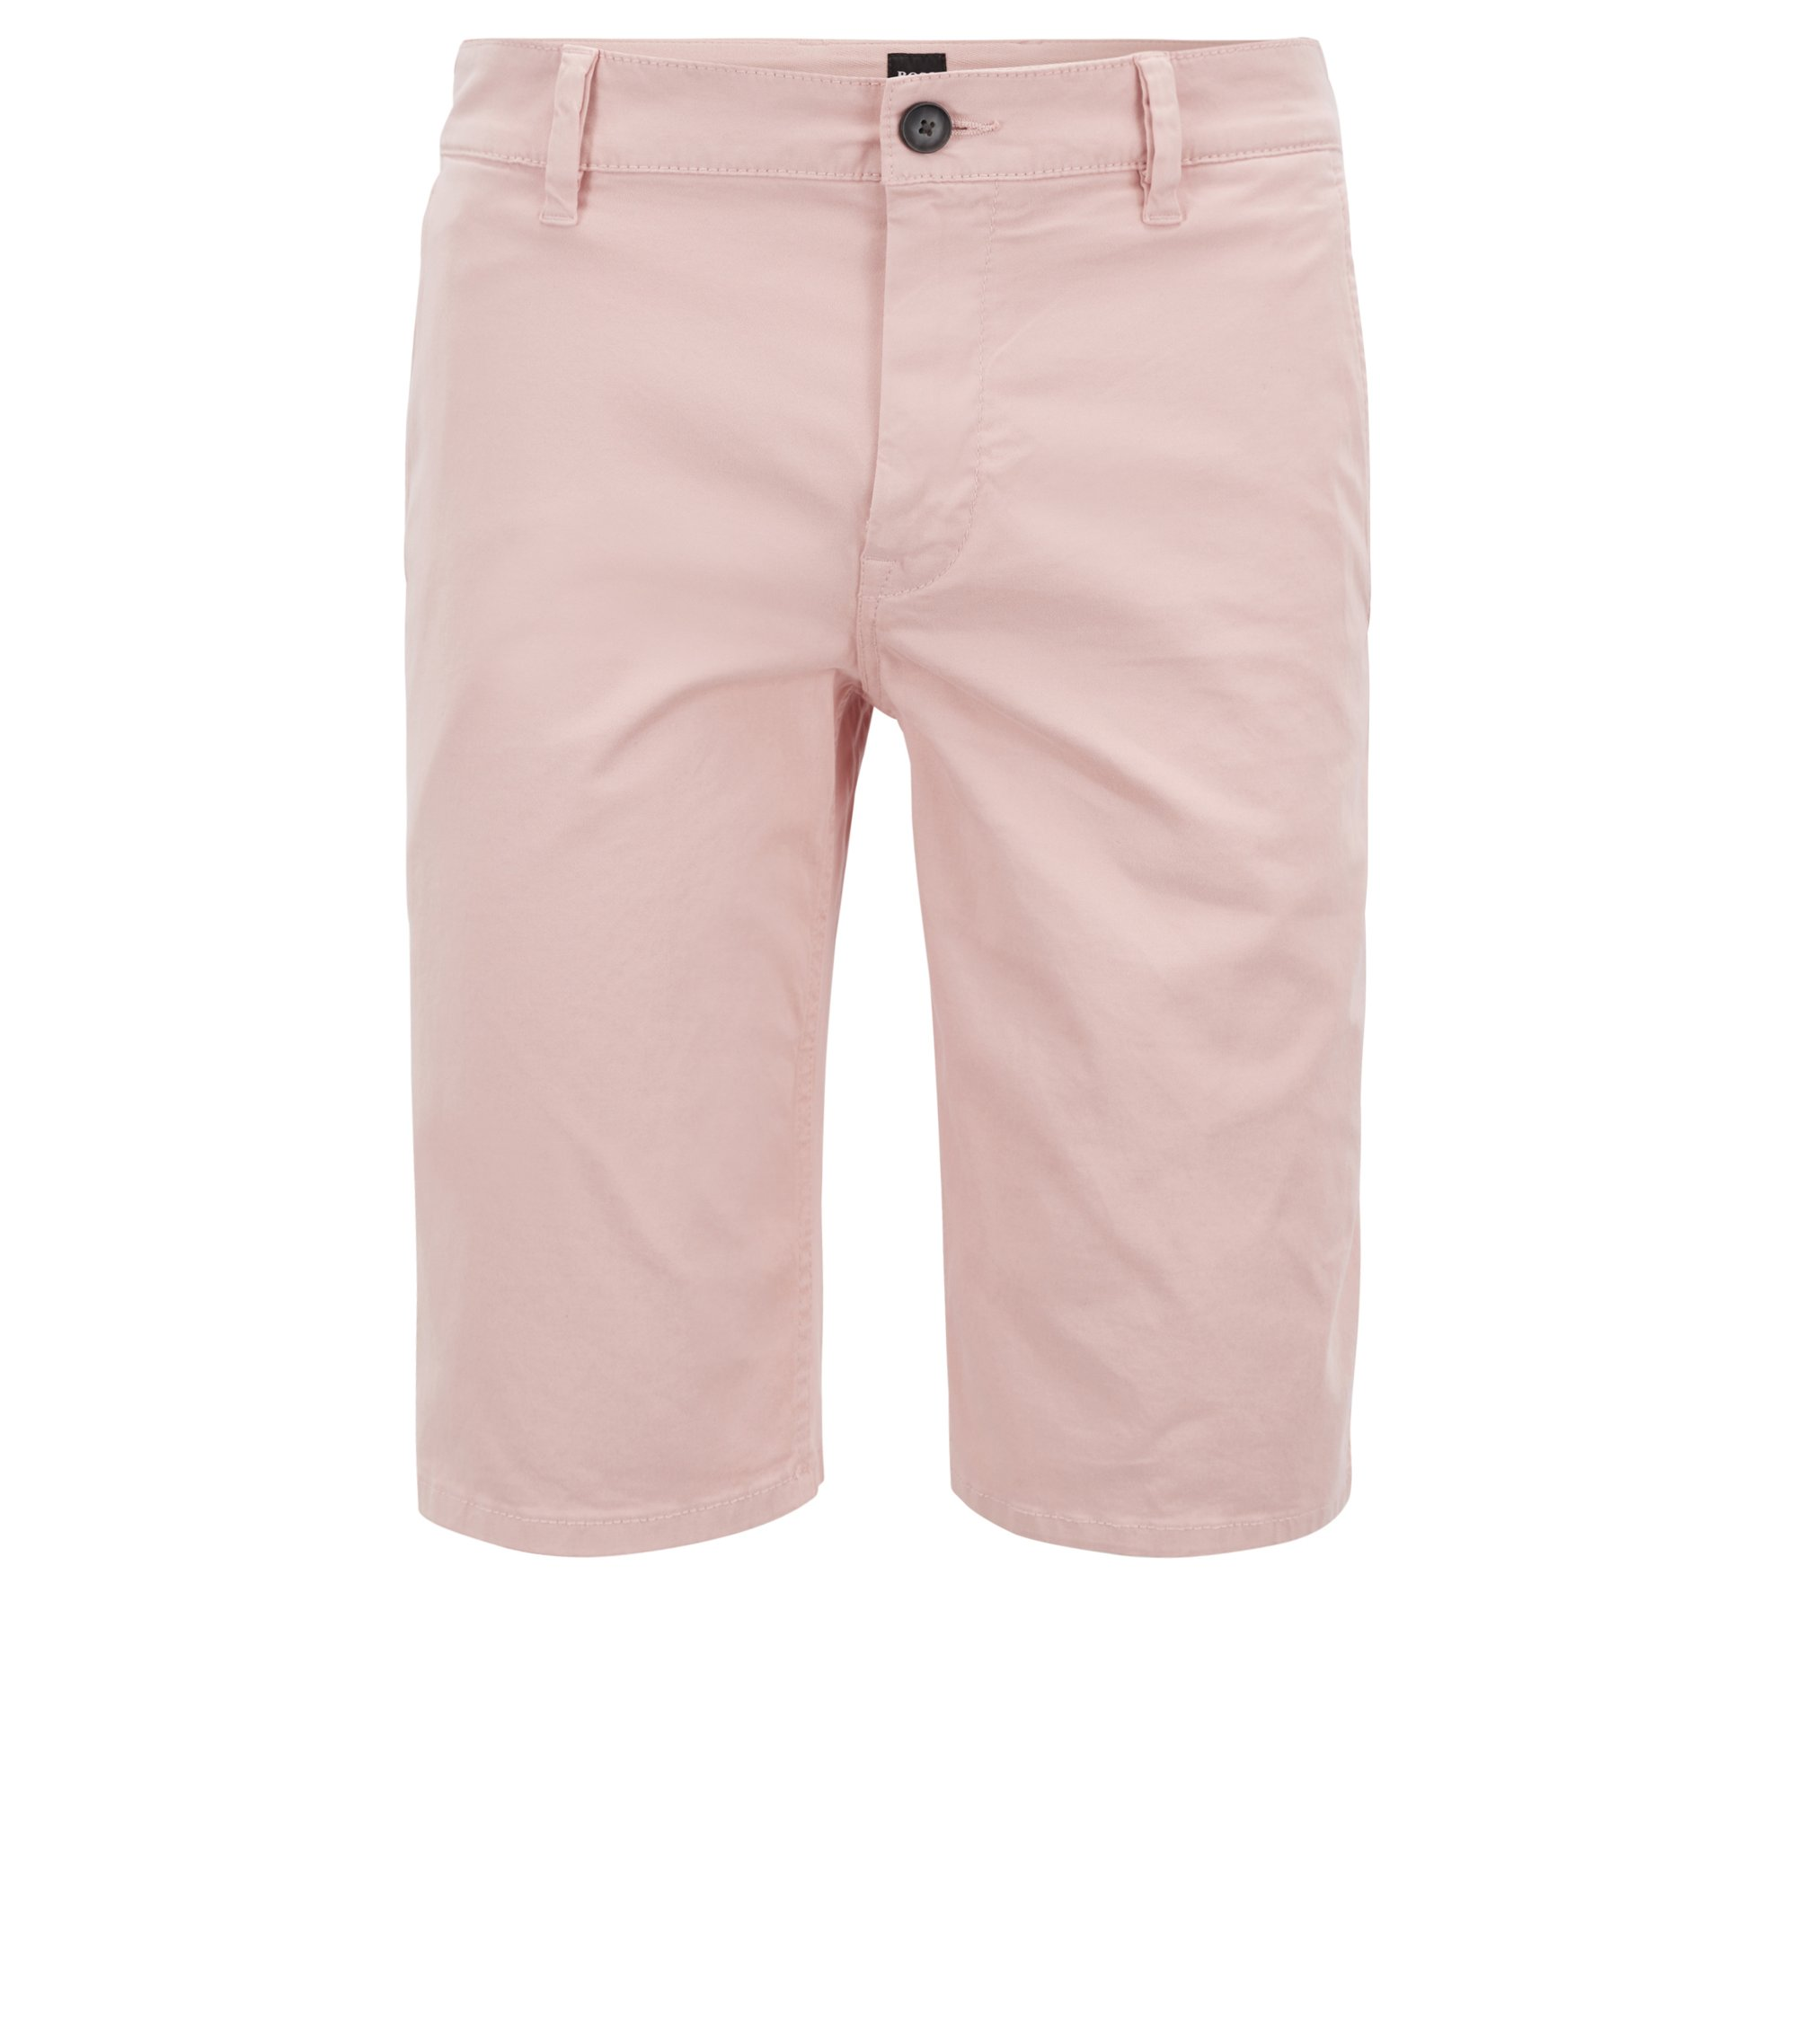 Stretch Cotton Chino Short, Slim Fit | Schino Slim Shorts D, light pink